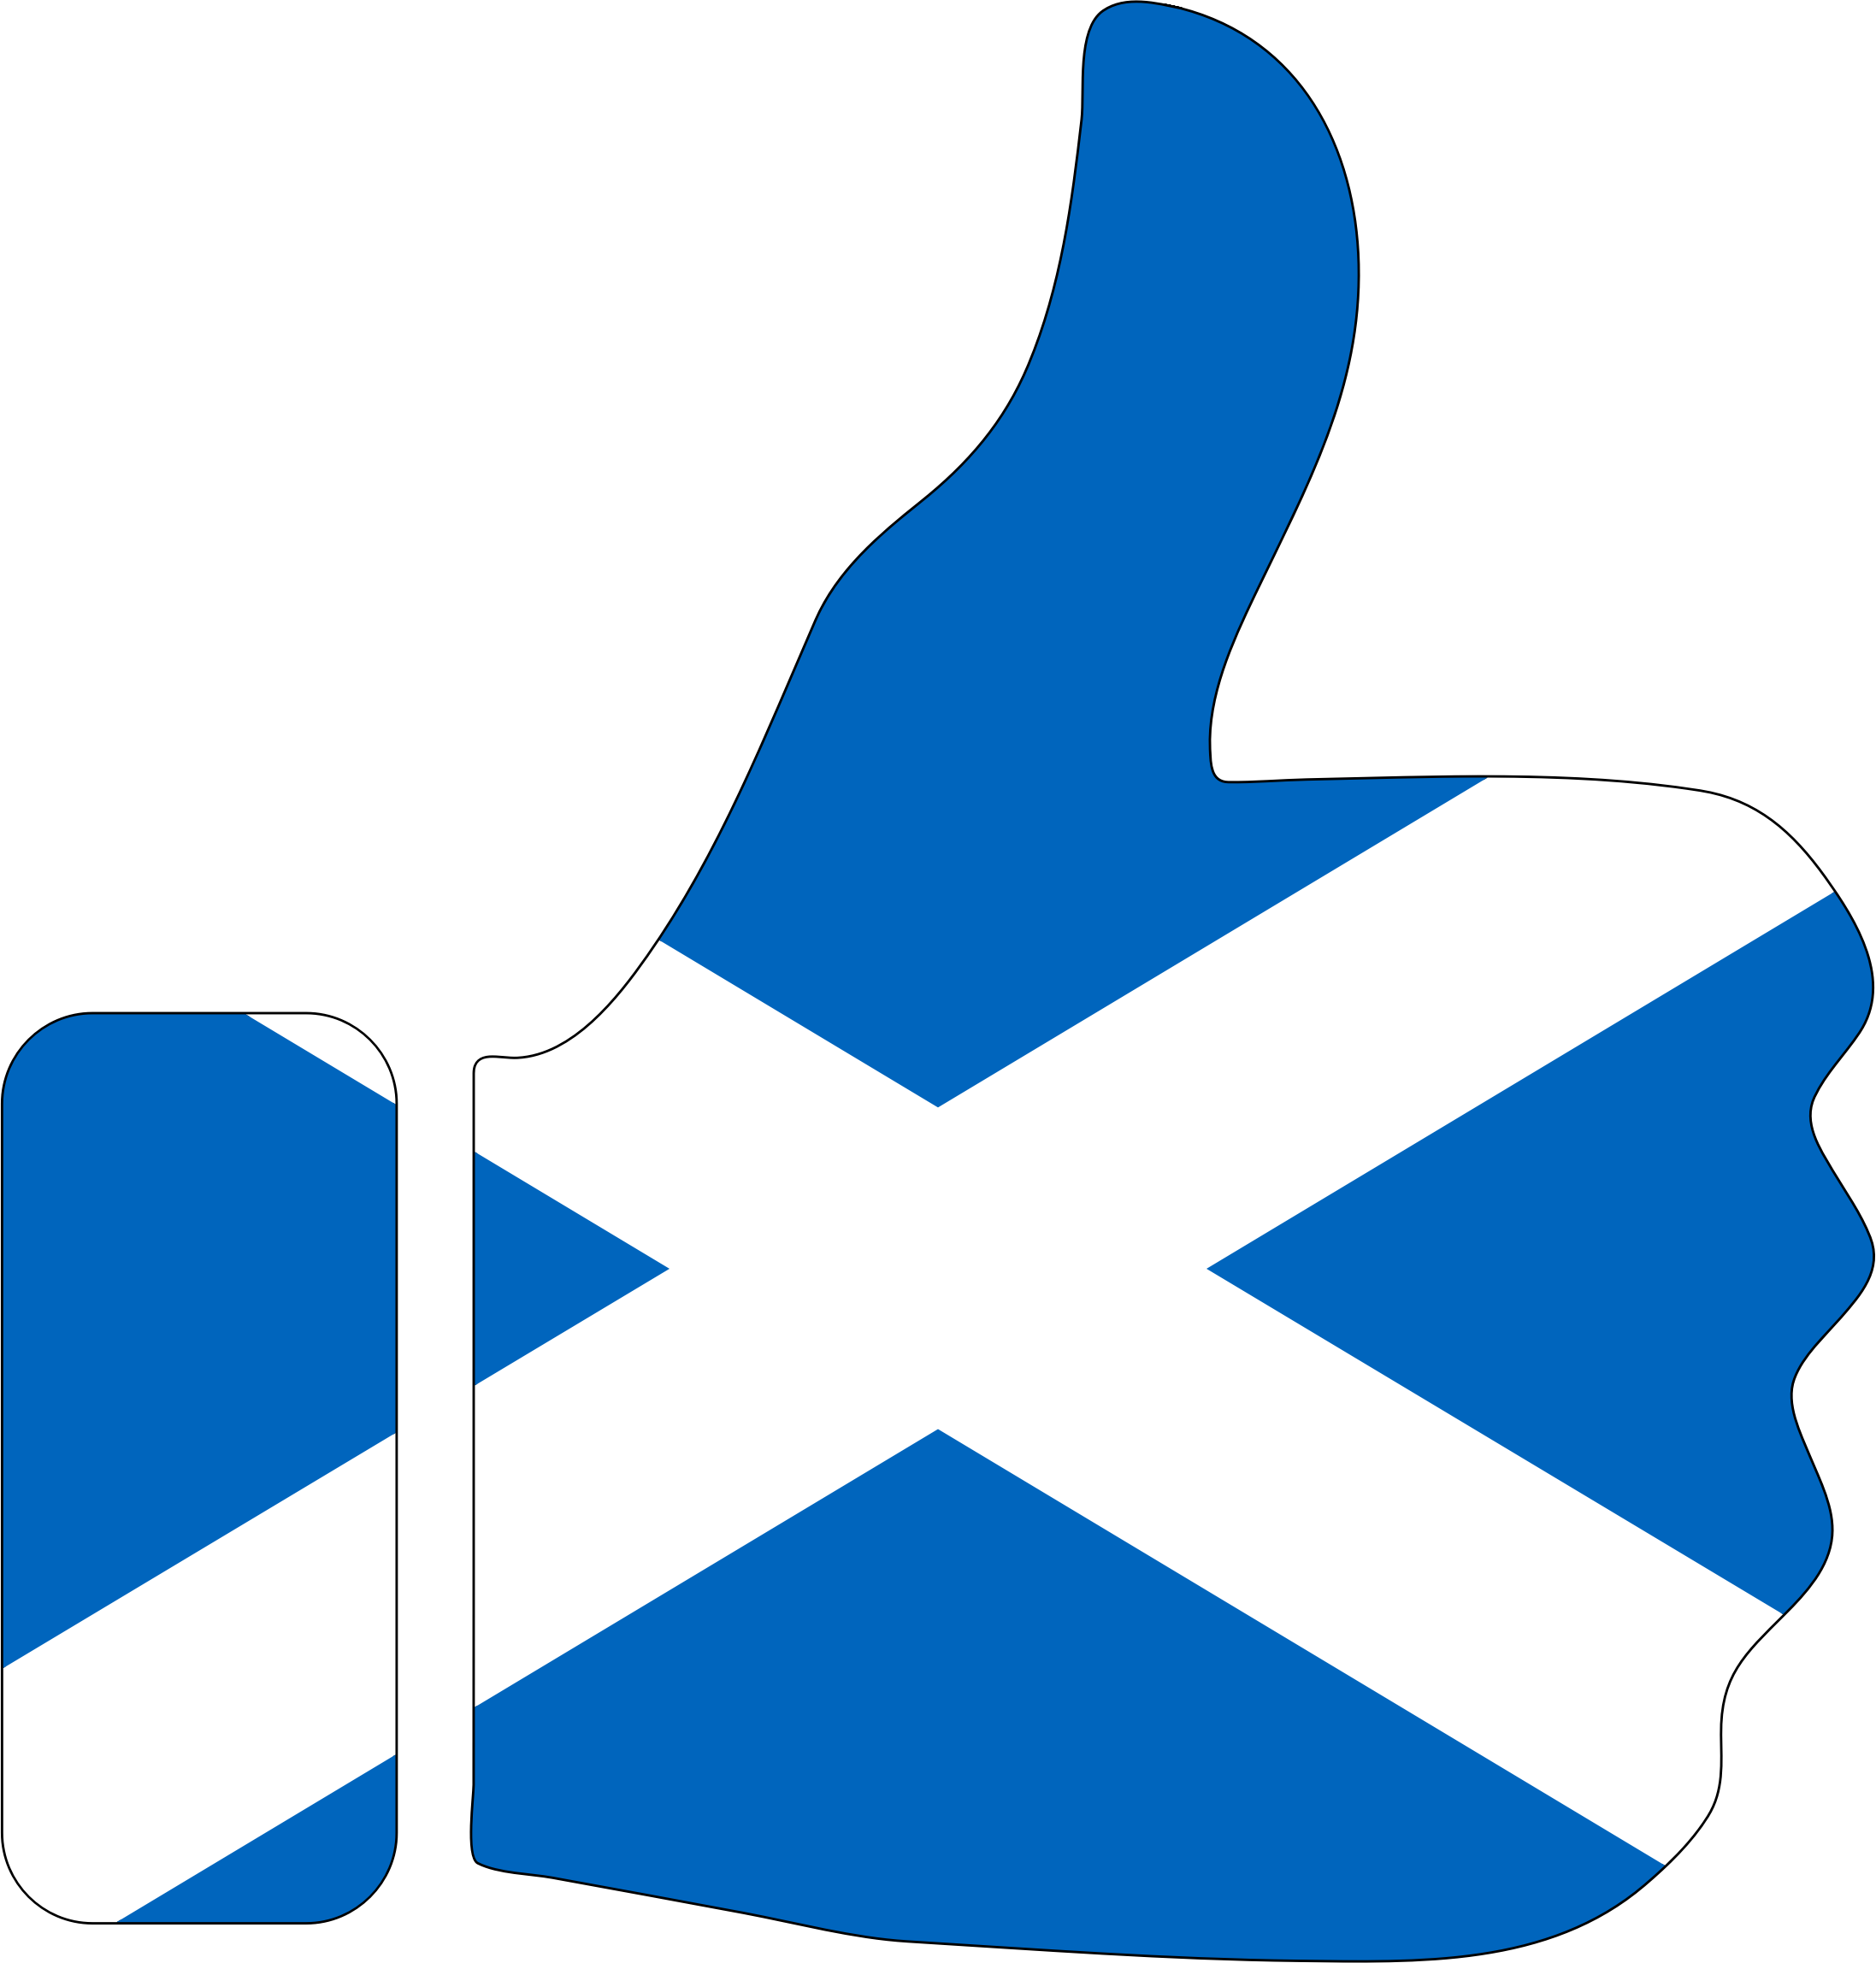 Thumbs Up Scotland With Stroke by GDJ